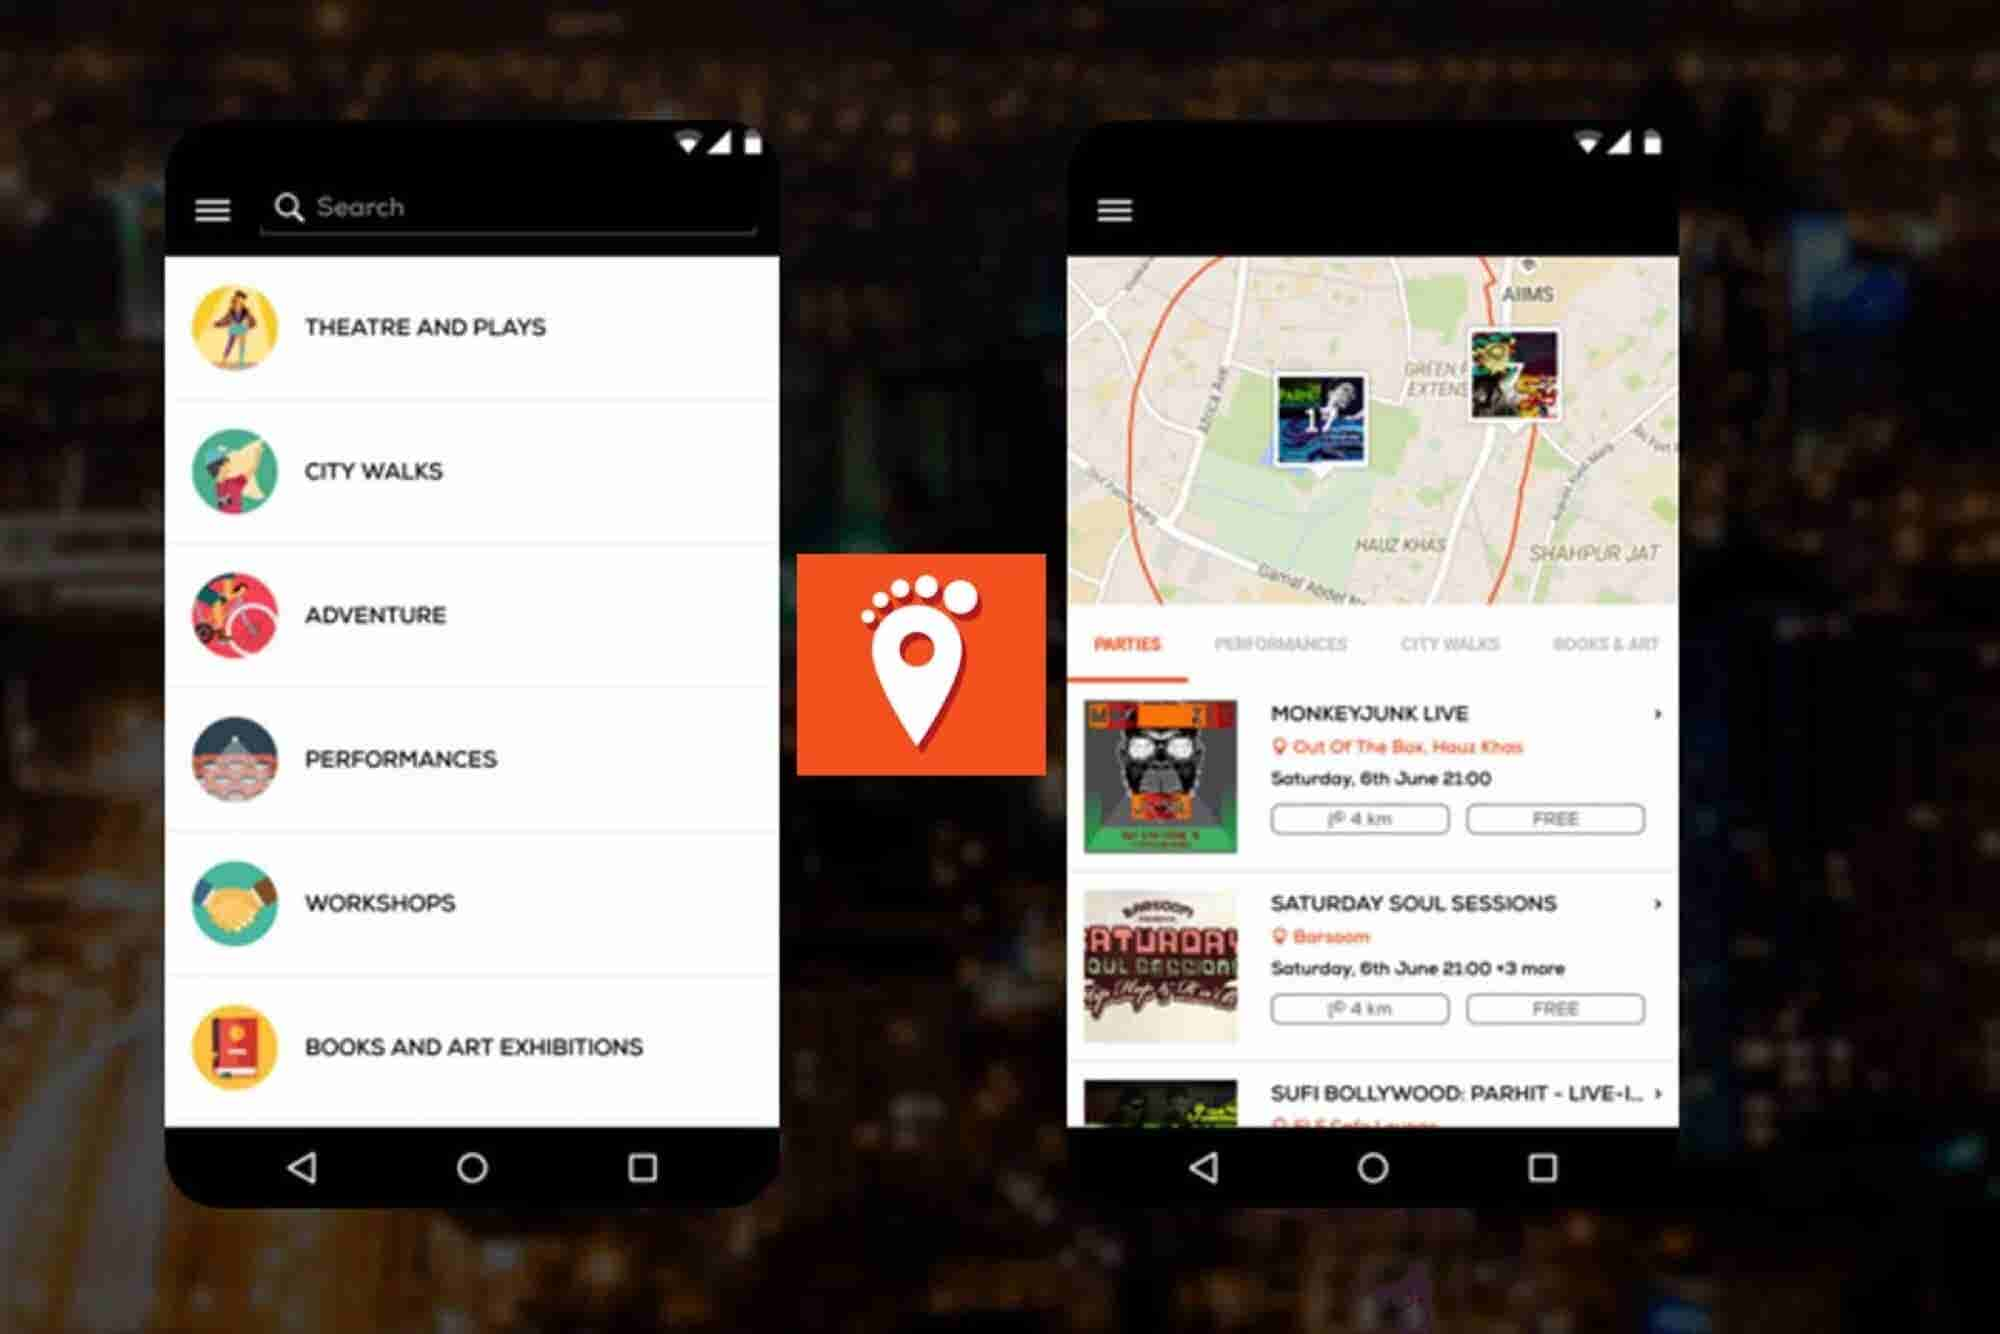 TownTrot: Never miss on an interesting event happening around you!